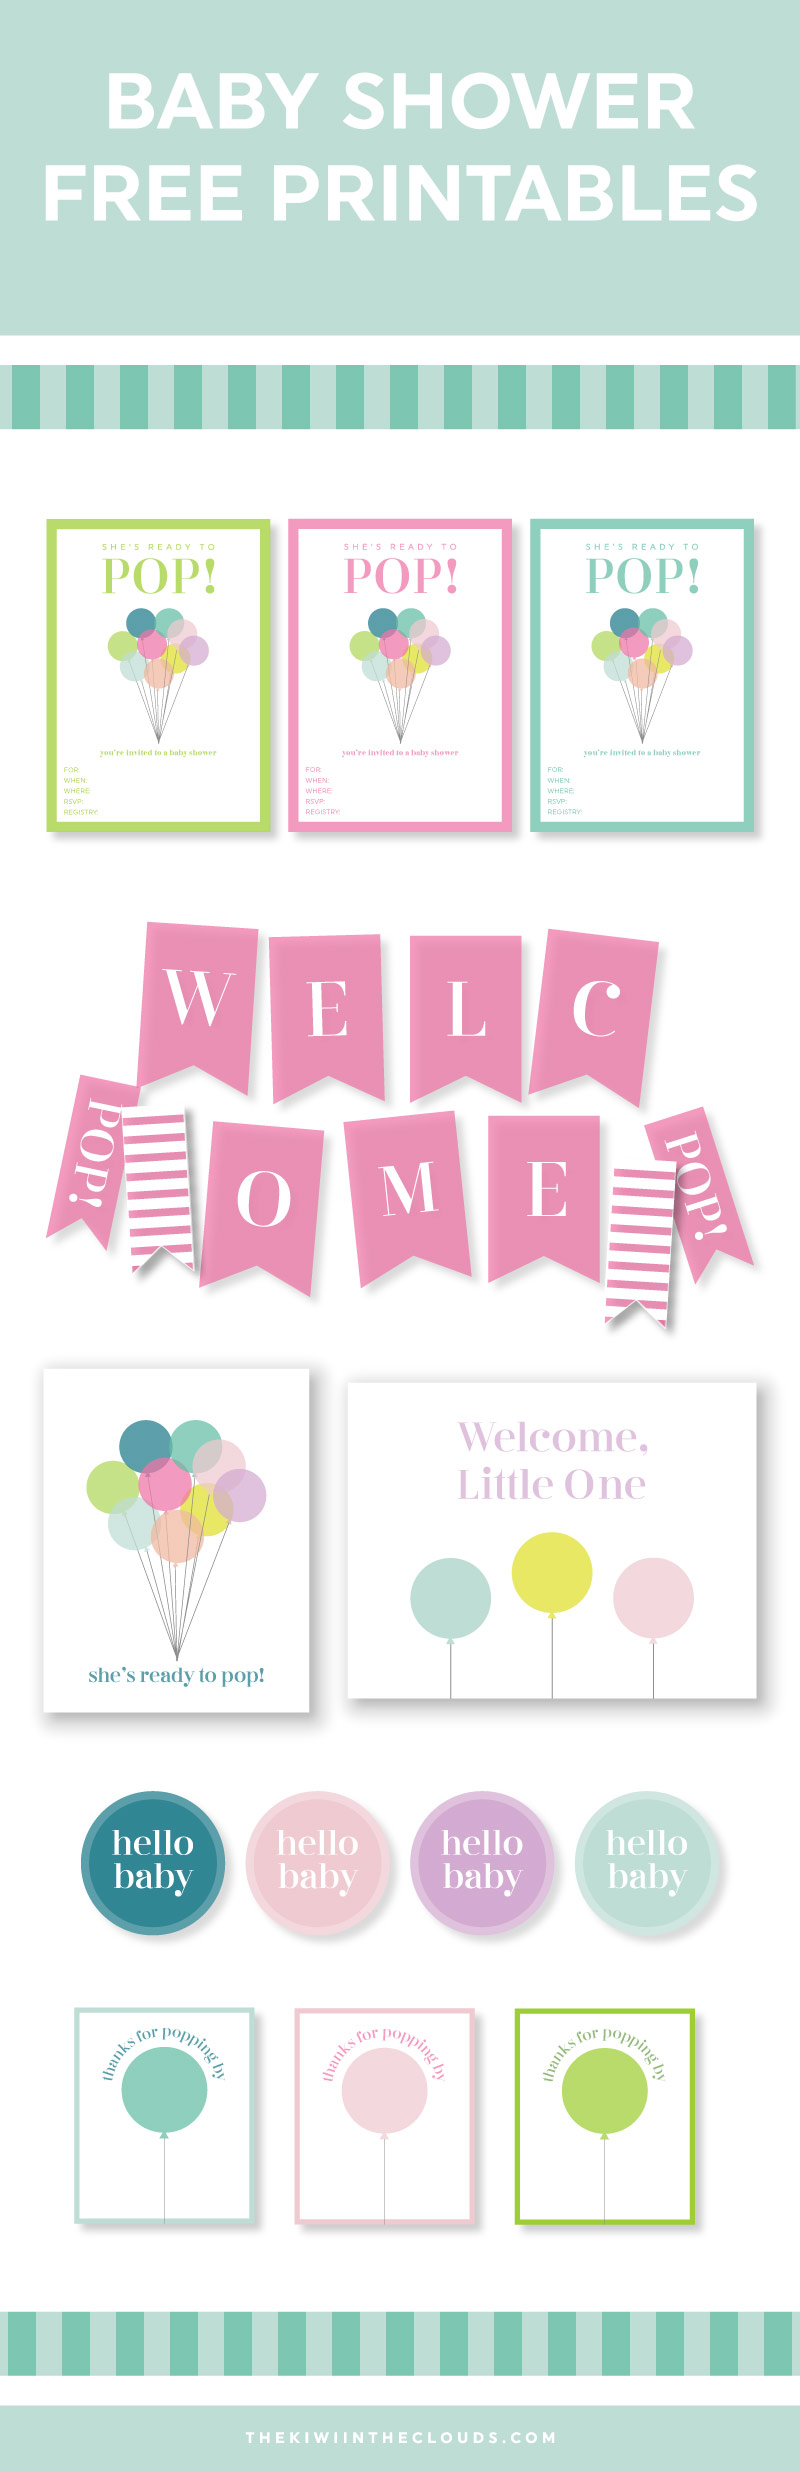 Dynamic image with free printable baby shower